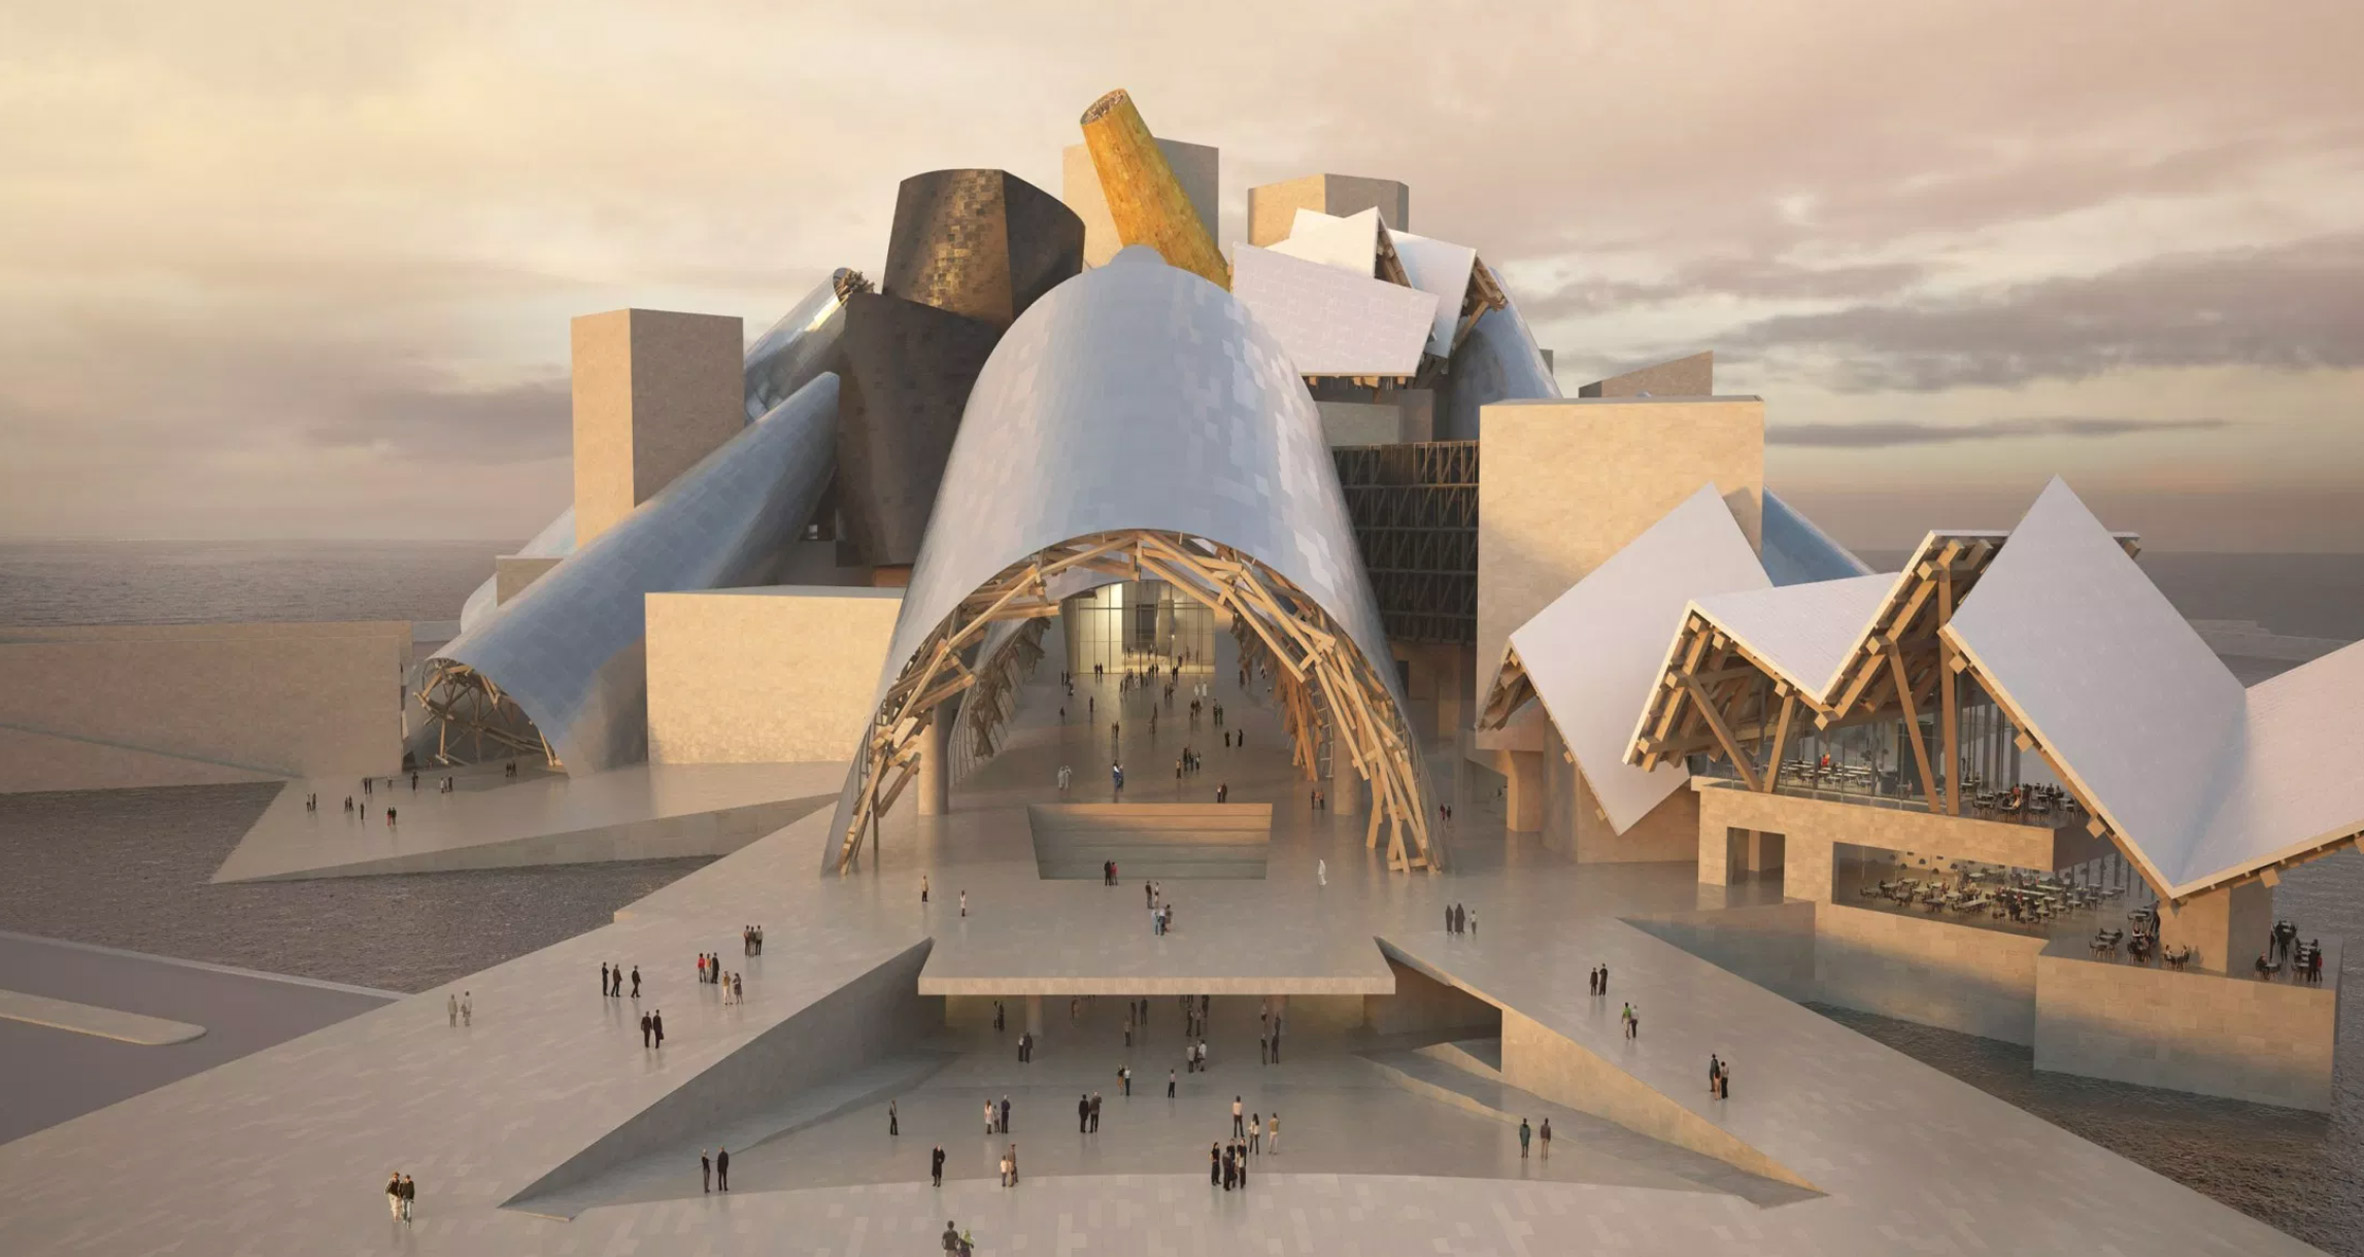 A render of Guggenheim Abu Dhabi by Frank Gehry